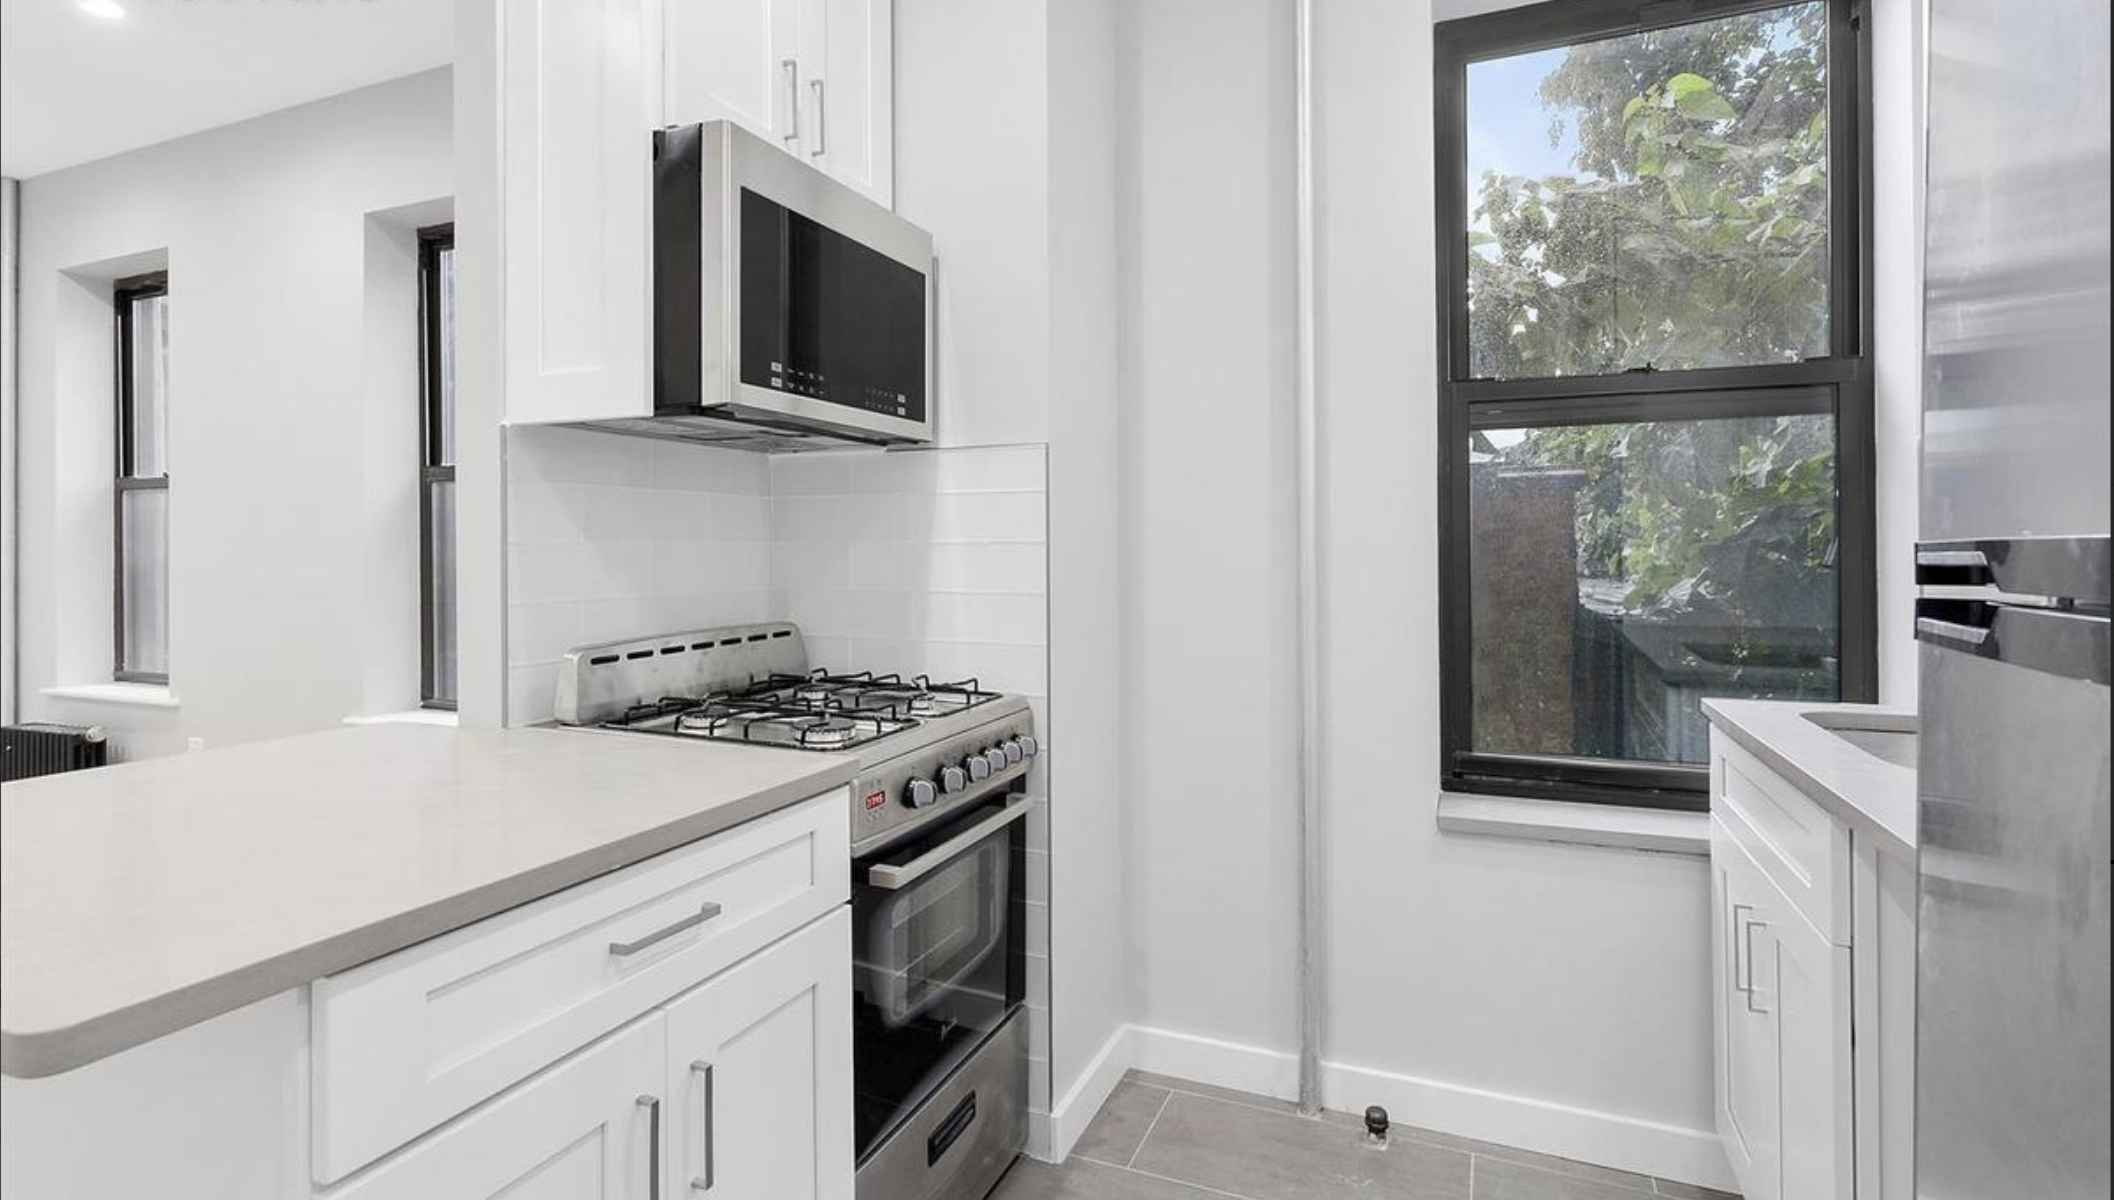 $2,200/month  2.0 BD | 1.0 BA  Stuyvesant Heights    482 Tompkins Avenue Apt. 3A